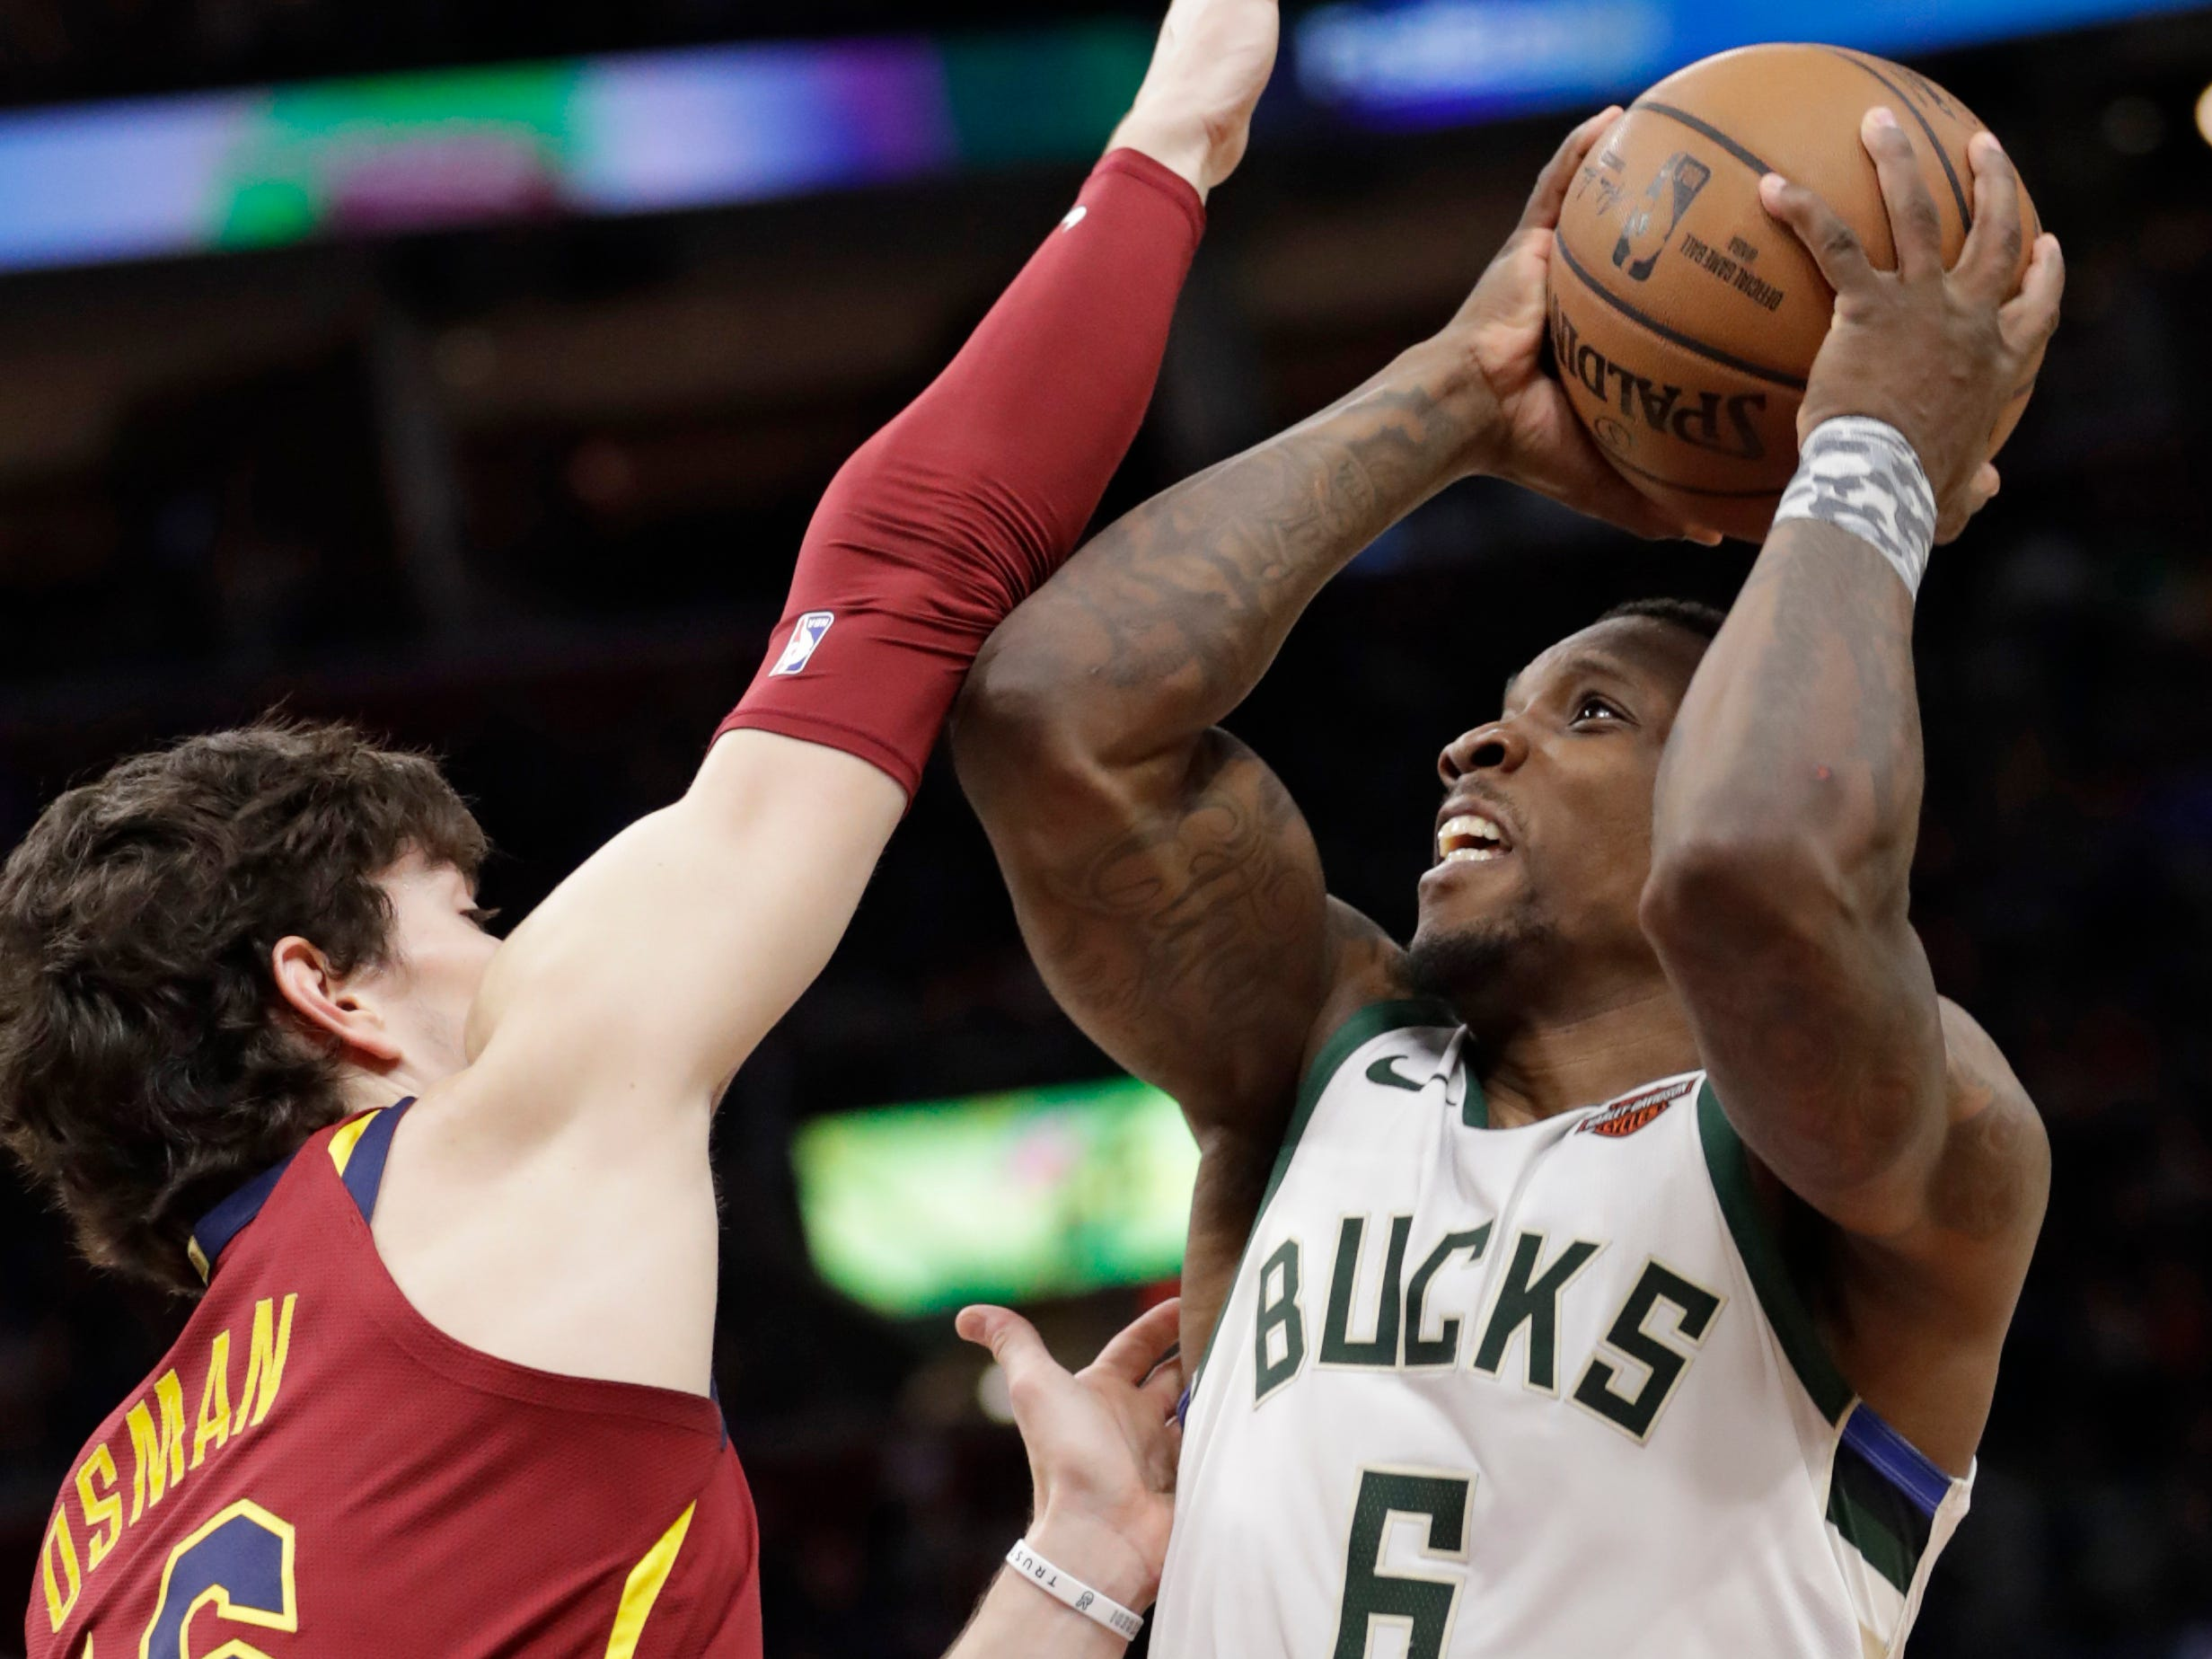 Bucks guard Eric Bledsoe goes up for a shot down low against the Cavaliers' Cedi Osman during the first half.